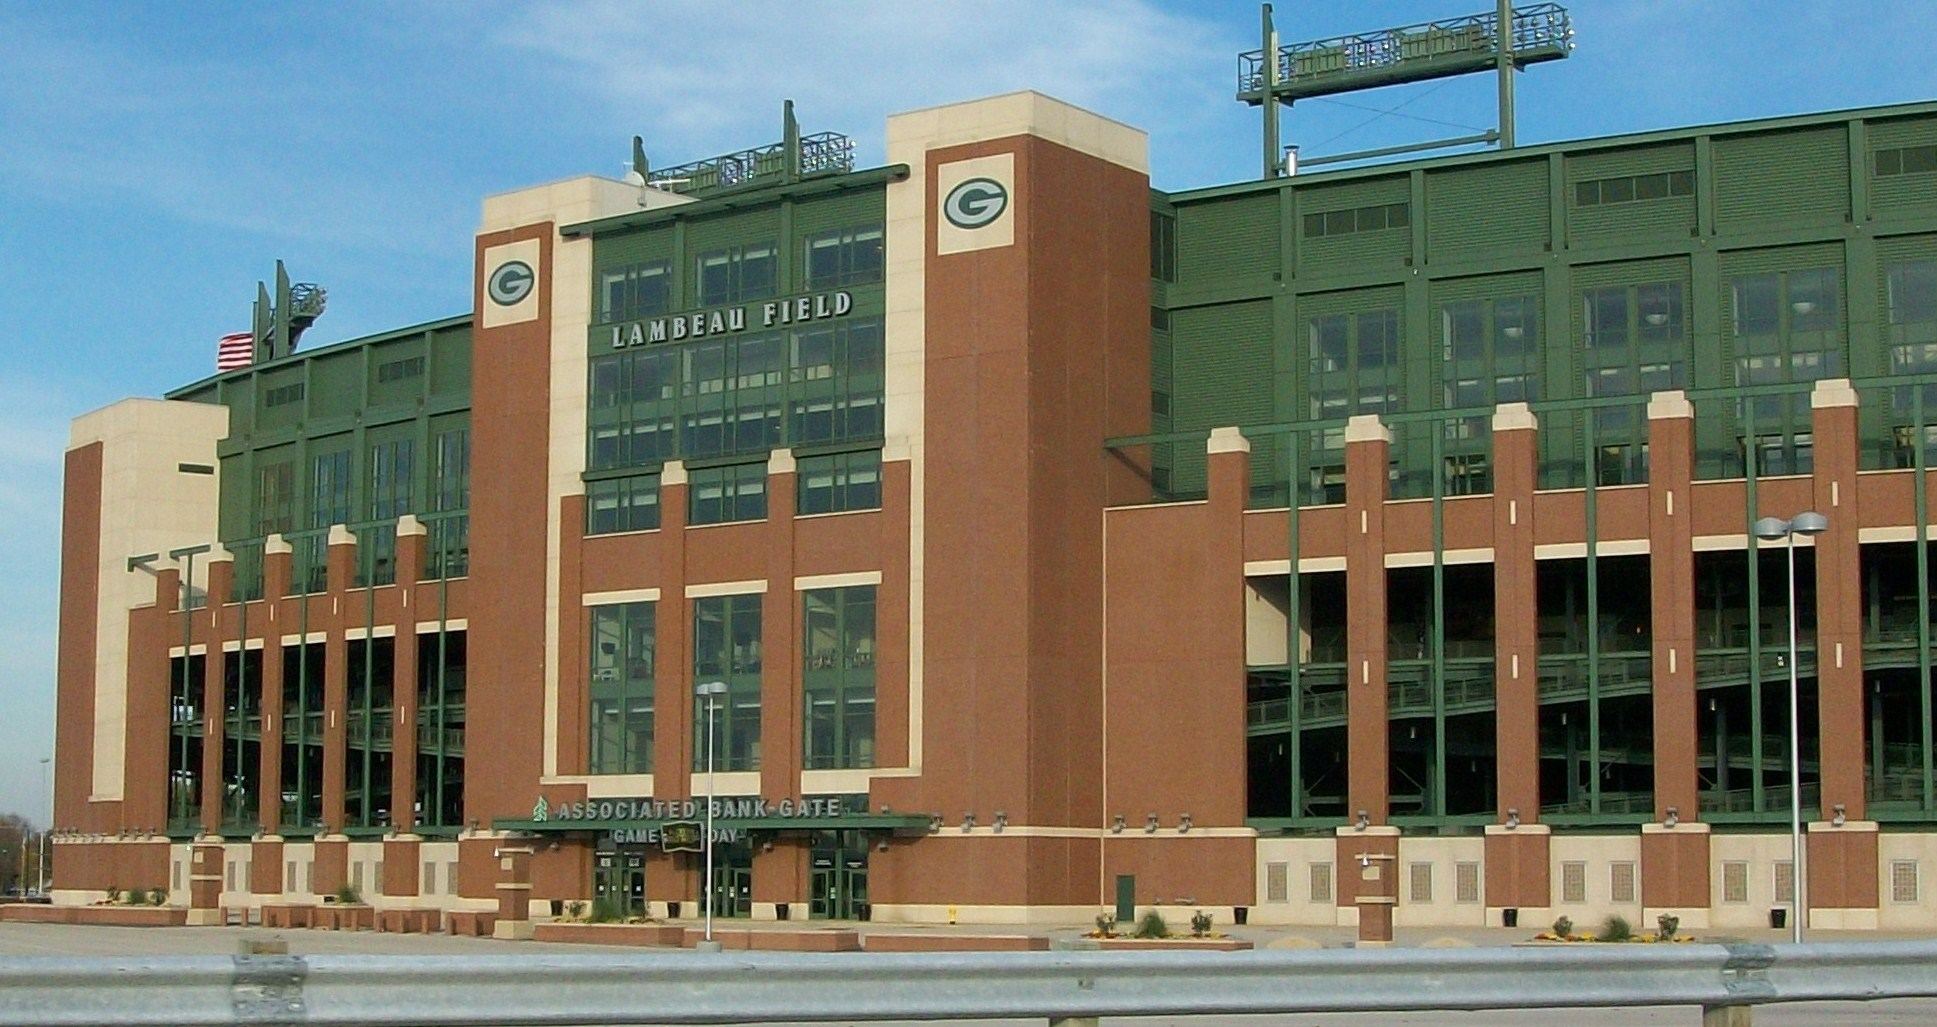 Lambeau Field: The Frozen Tundra